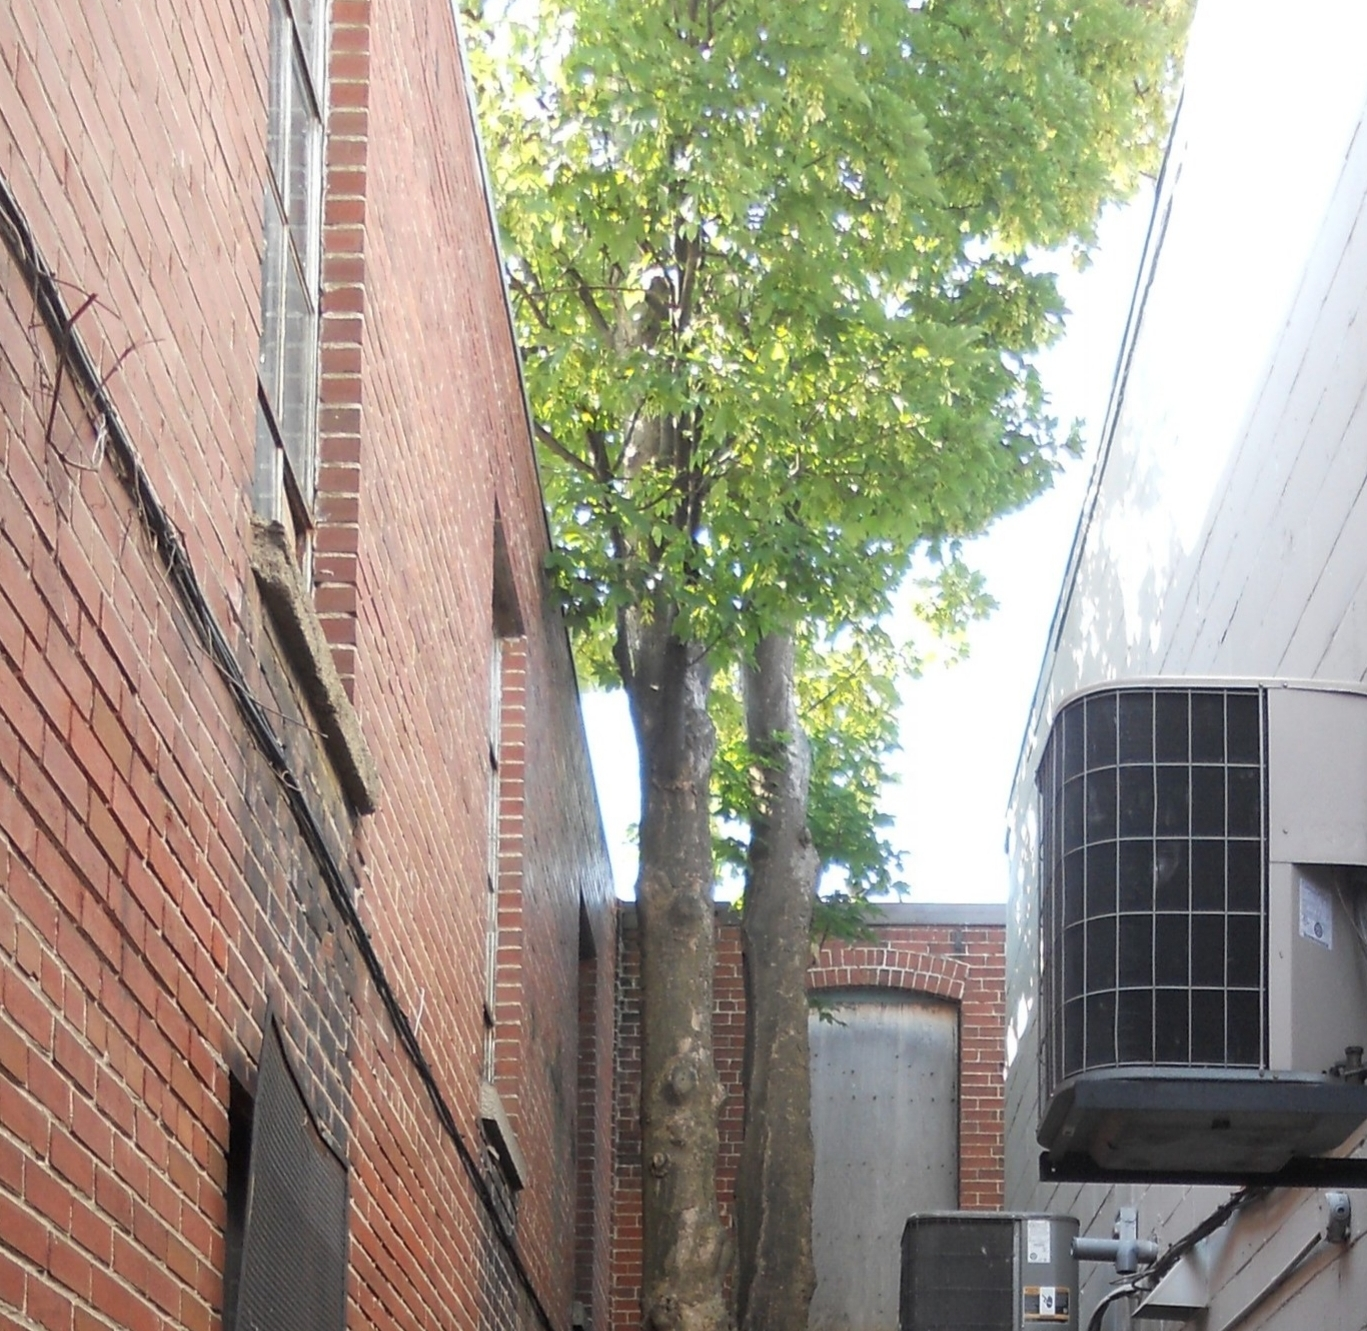 A tree on the museum property will be removed to prevent damage to the museum's foundation and roof.